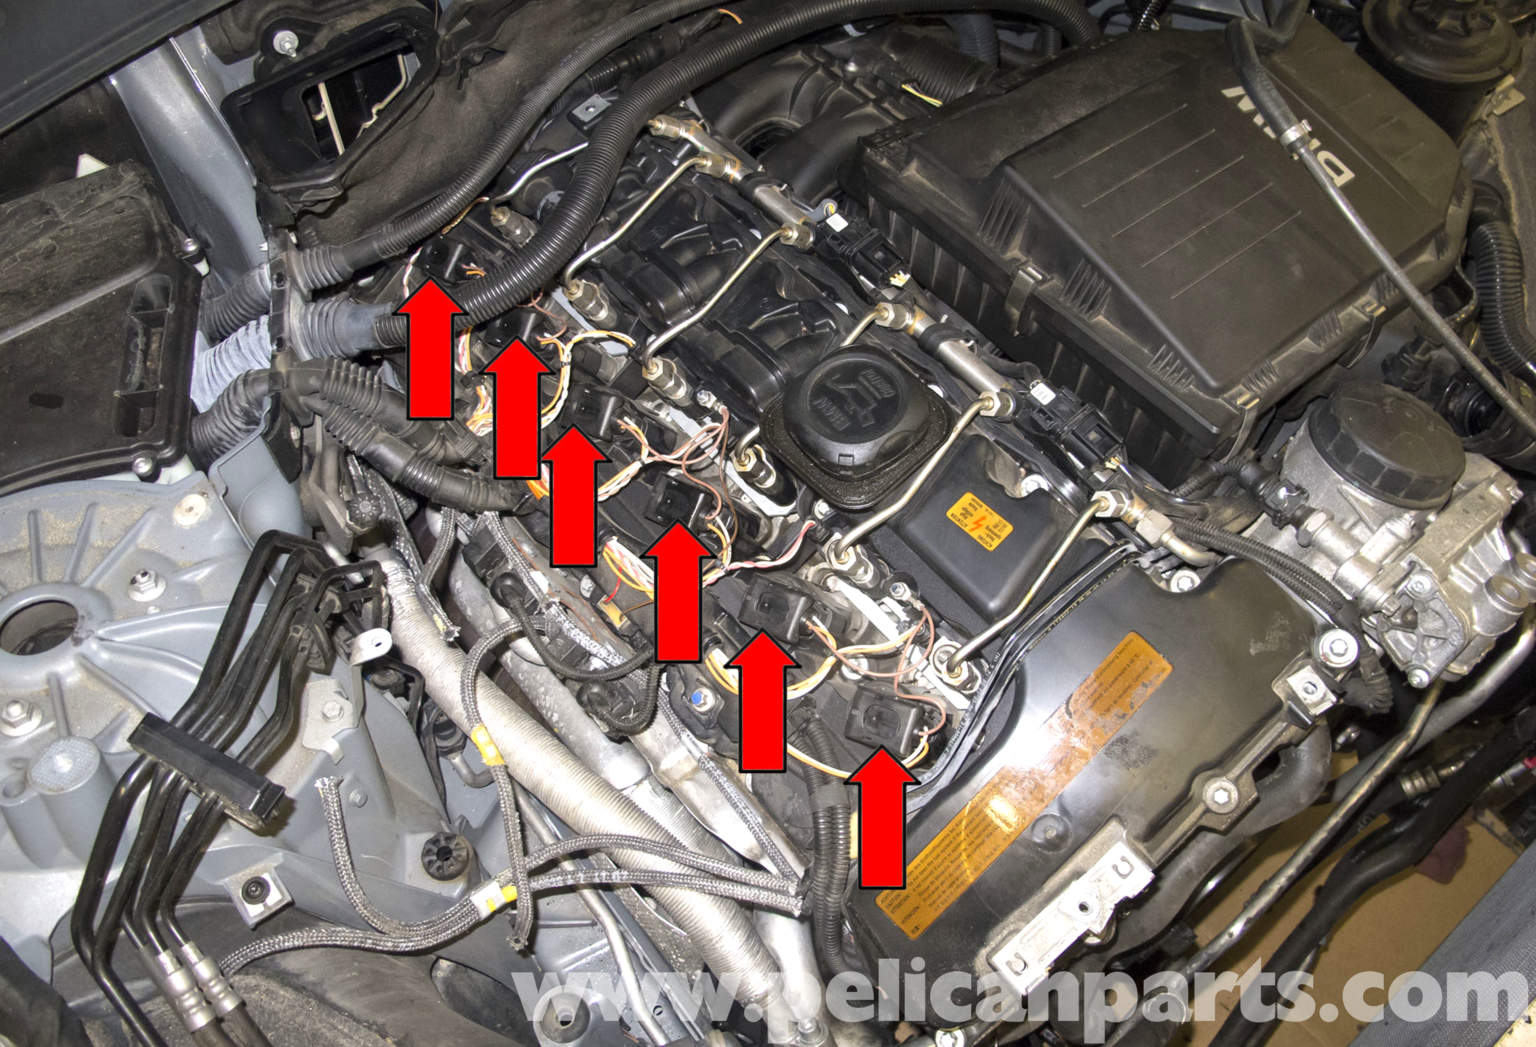 T18913824 Starter relay 2003 murano moreover 68 ENGINE N52   N54 Engine Spark Plug Coil Replacement also 1981 Honda Cx500 Wiring Diagram together with Mazda 13b Leading And Trailing Wiring Diagram furthermore 396035360956193700. on bmw x3 ignition coil diagram